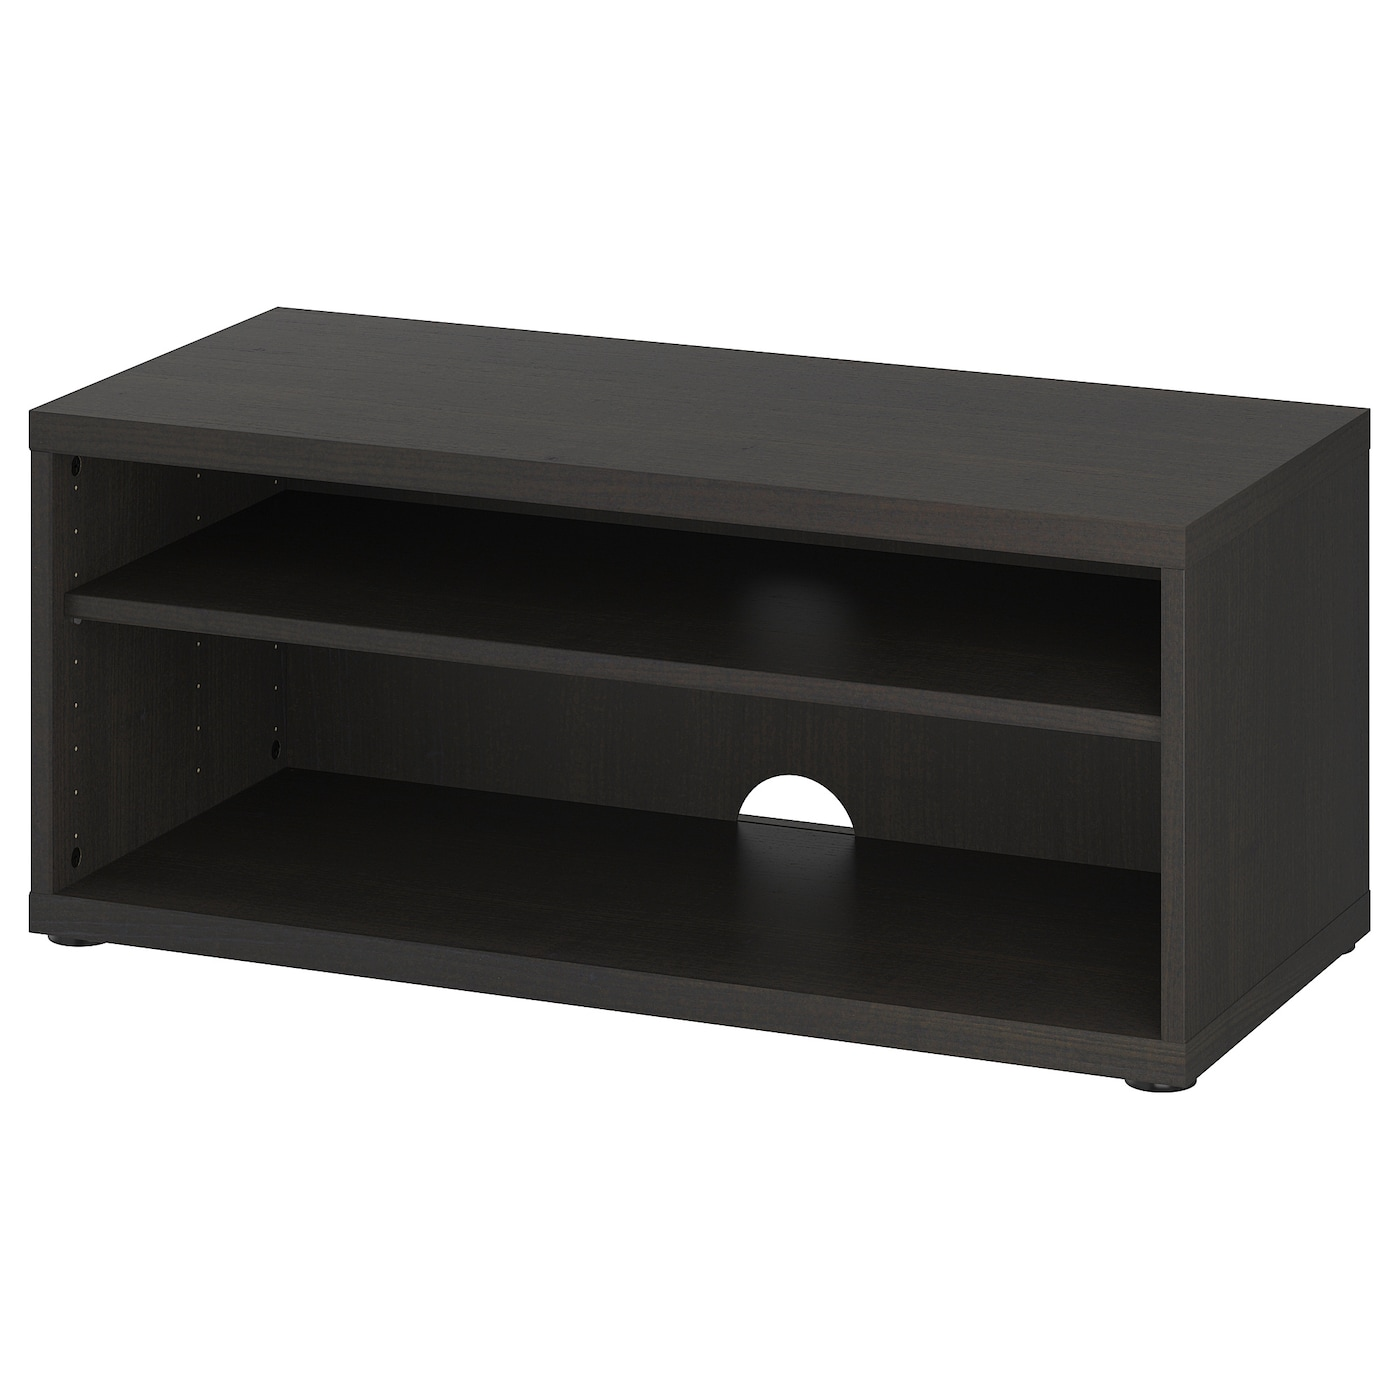 Mosjo Mueble Tv Negro Marron 90 X 40 X 38 Cm Ikea